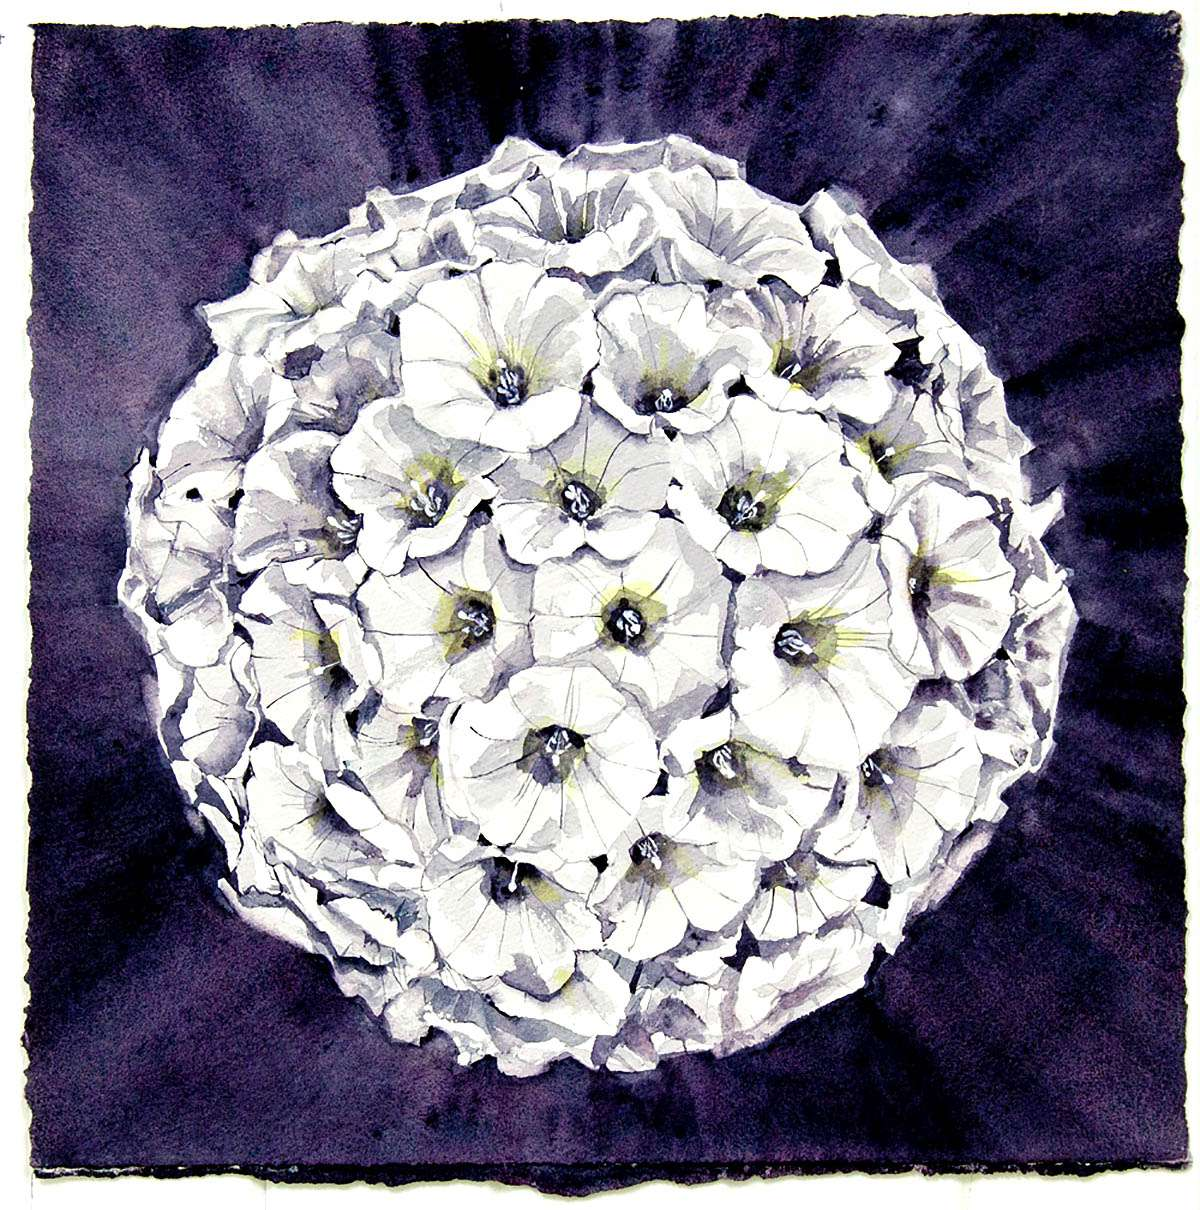 Kirsty Lorenz, 'Full Moon in Bindweed', watercolour and acrylic on paper